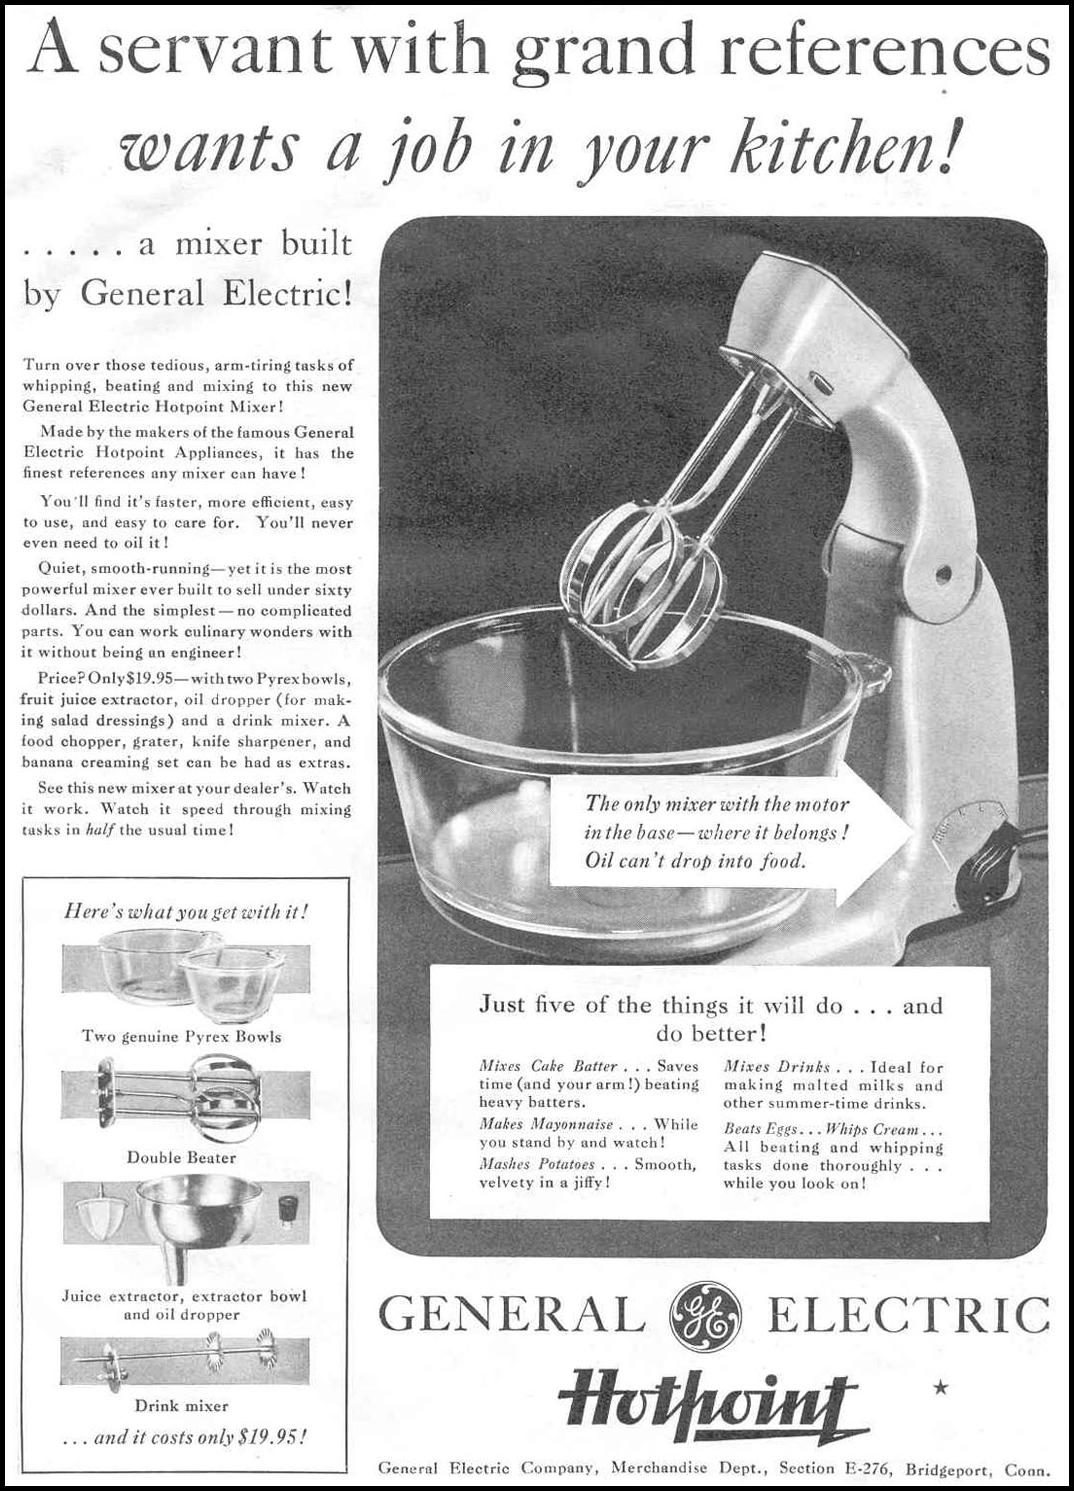 HOTPOINT MIXER GOOD HOUSEKEEPING 06/01/1933 p. 121